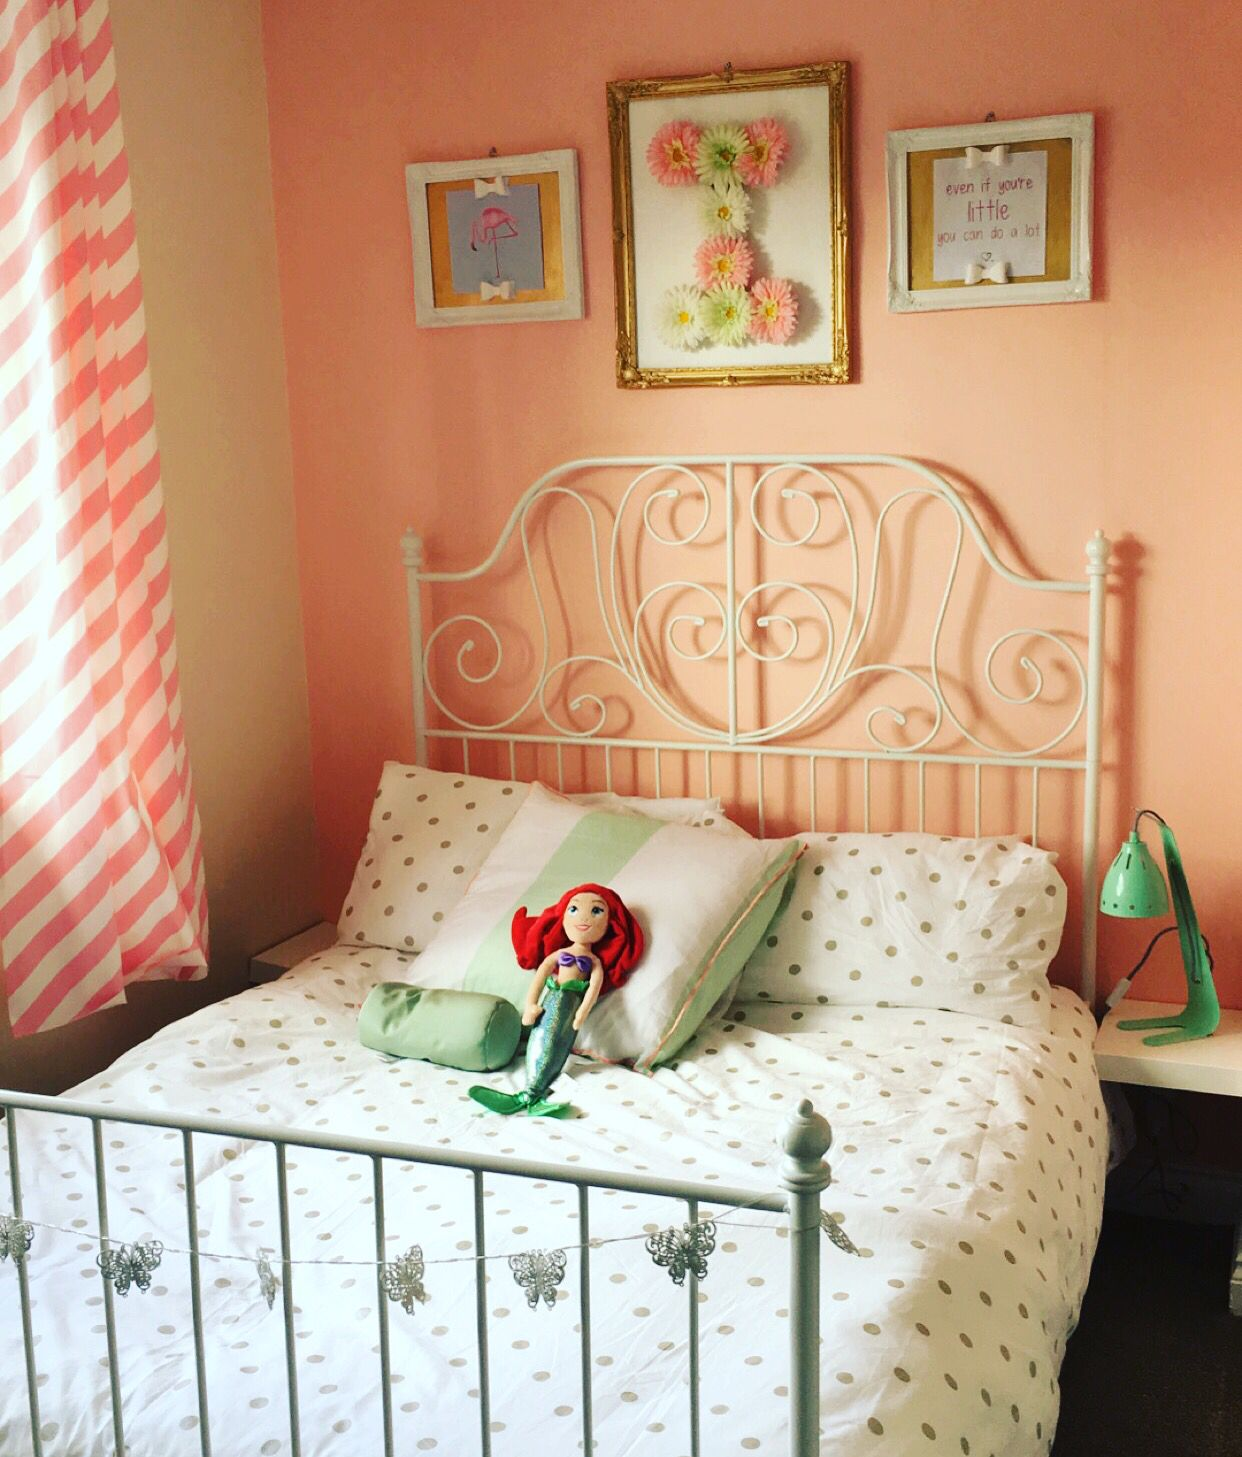 Peach and Mint Bedroom Mint bedroom, Home decor